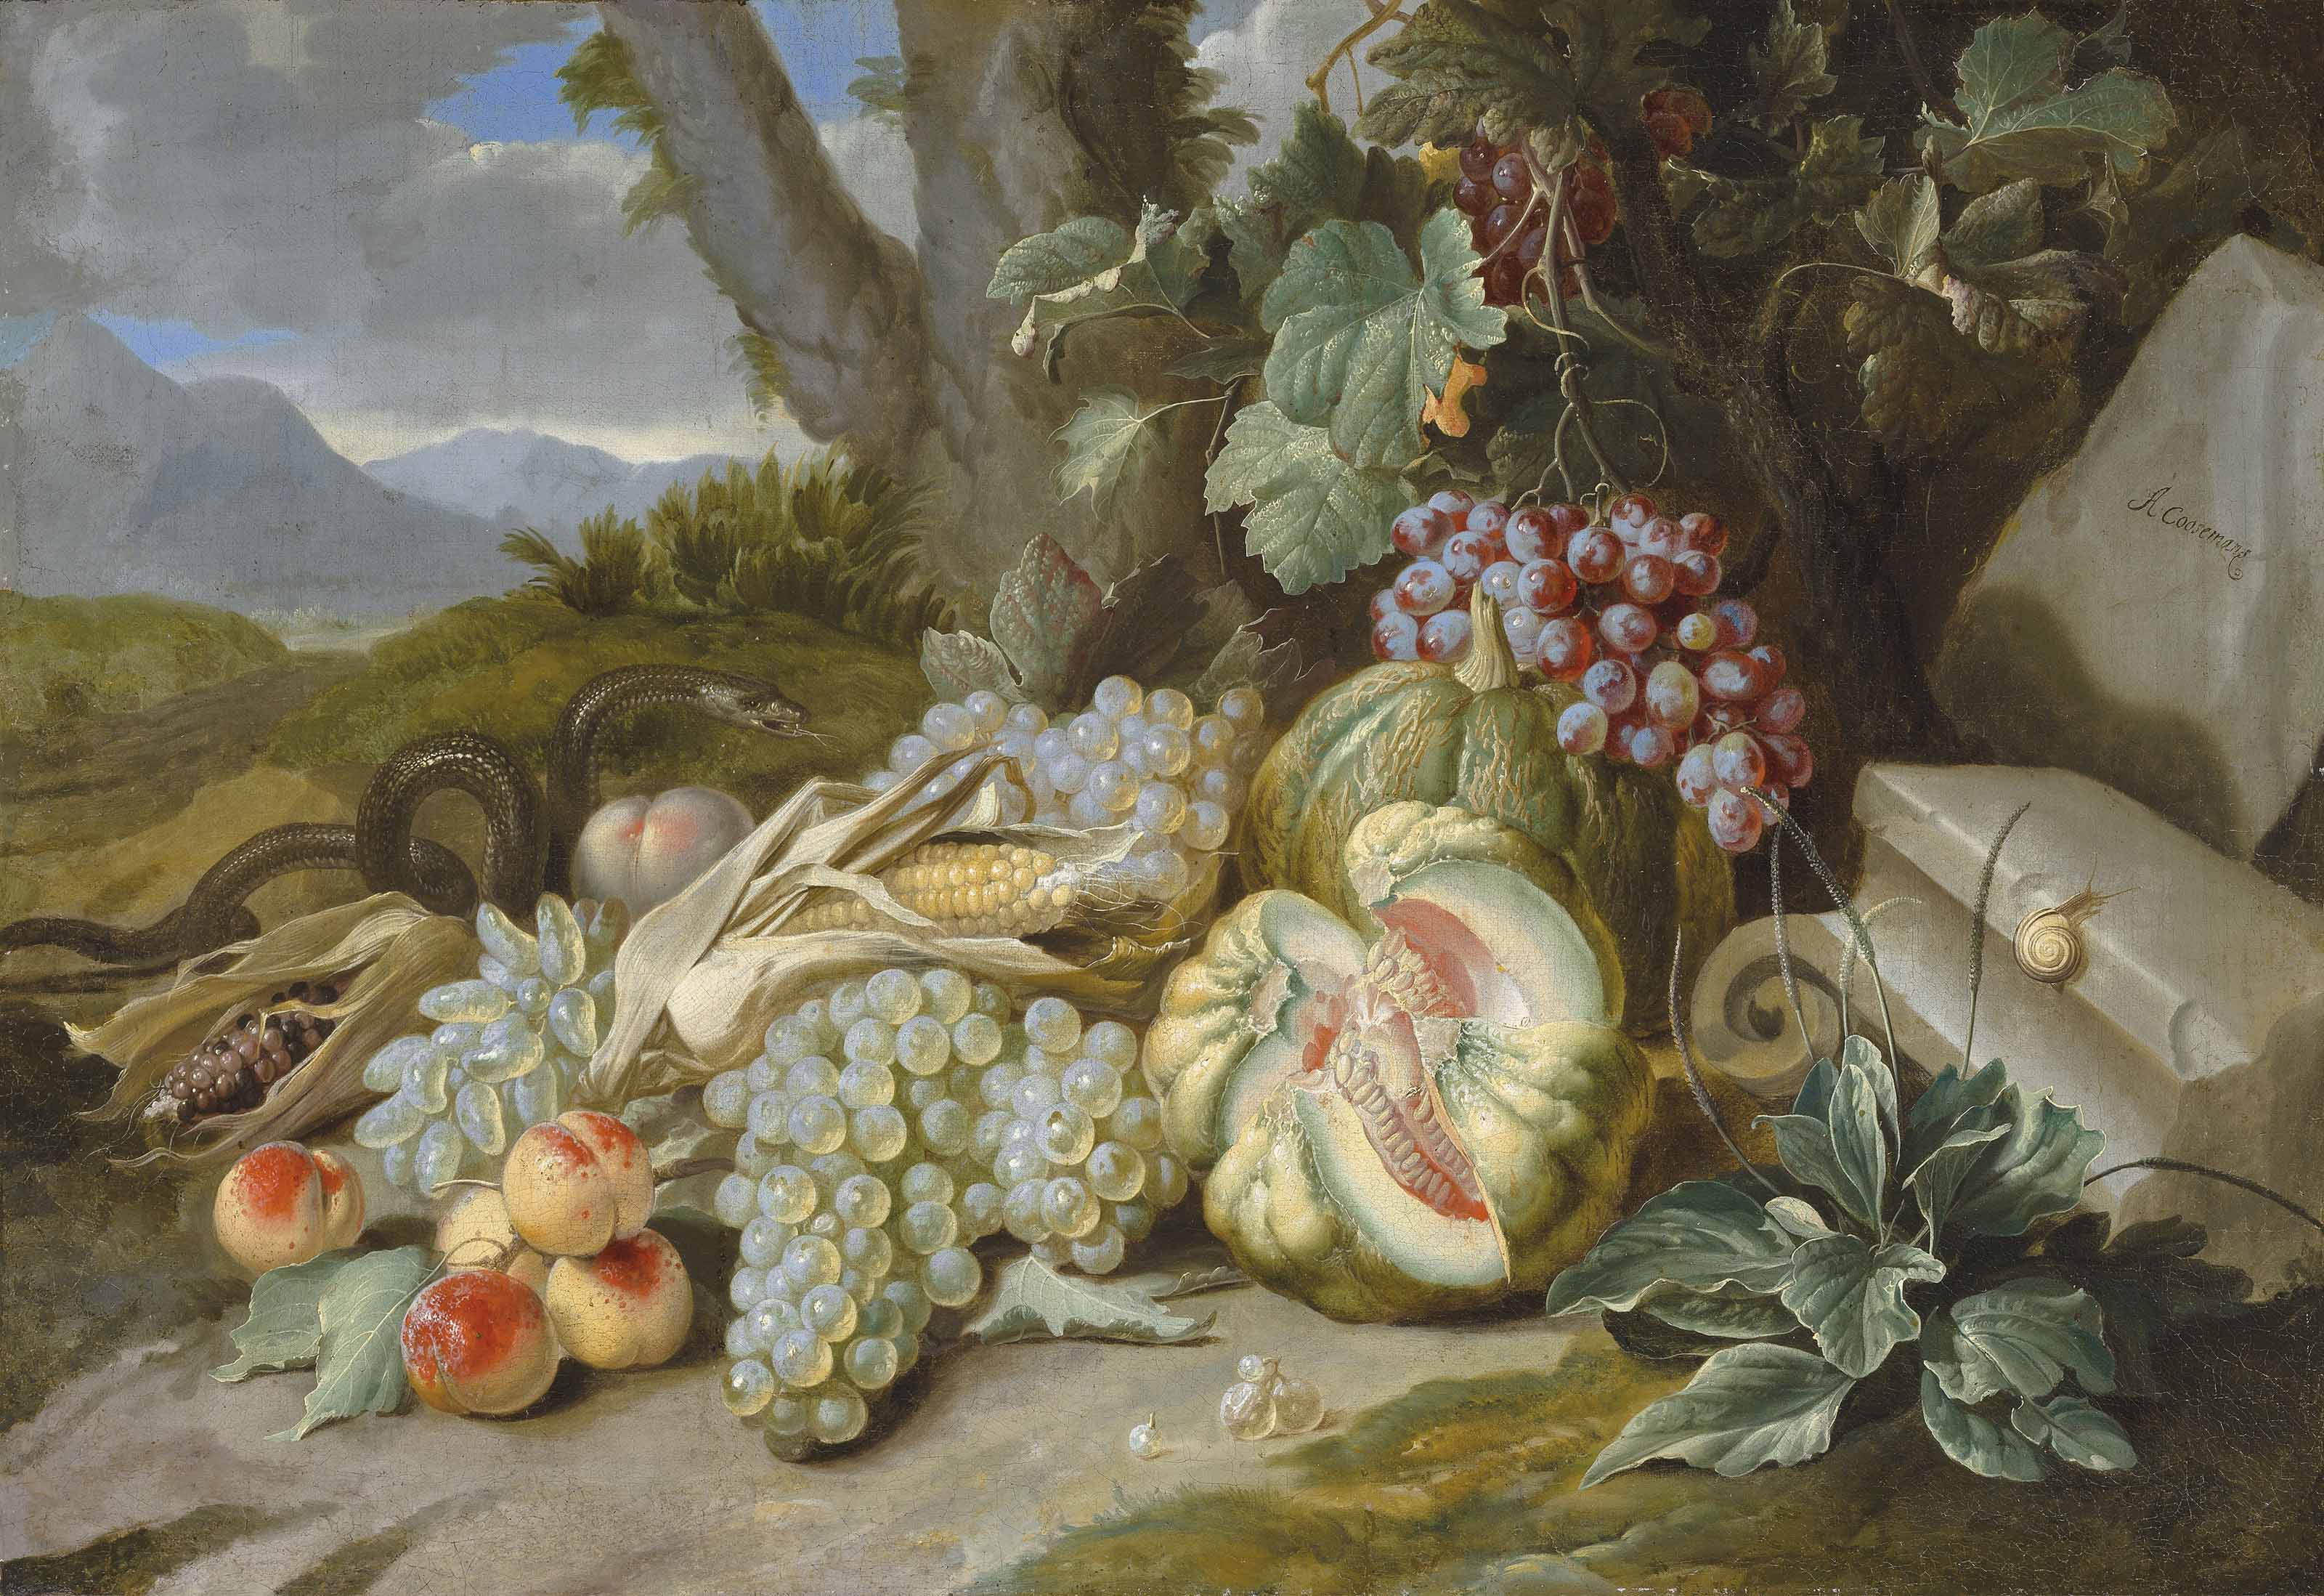 Melons, grapes, peaches and corn with a snake, in a landscape